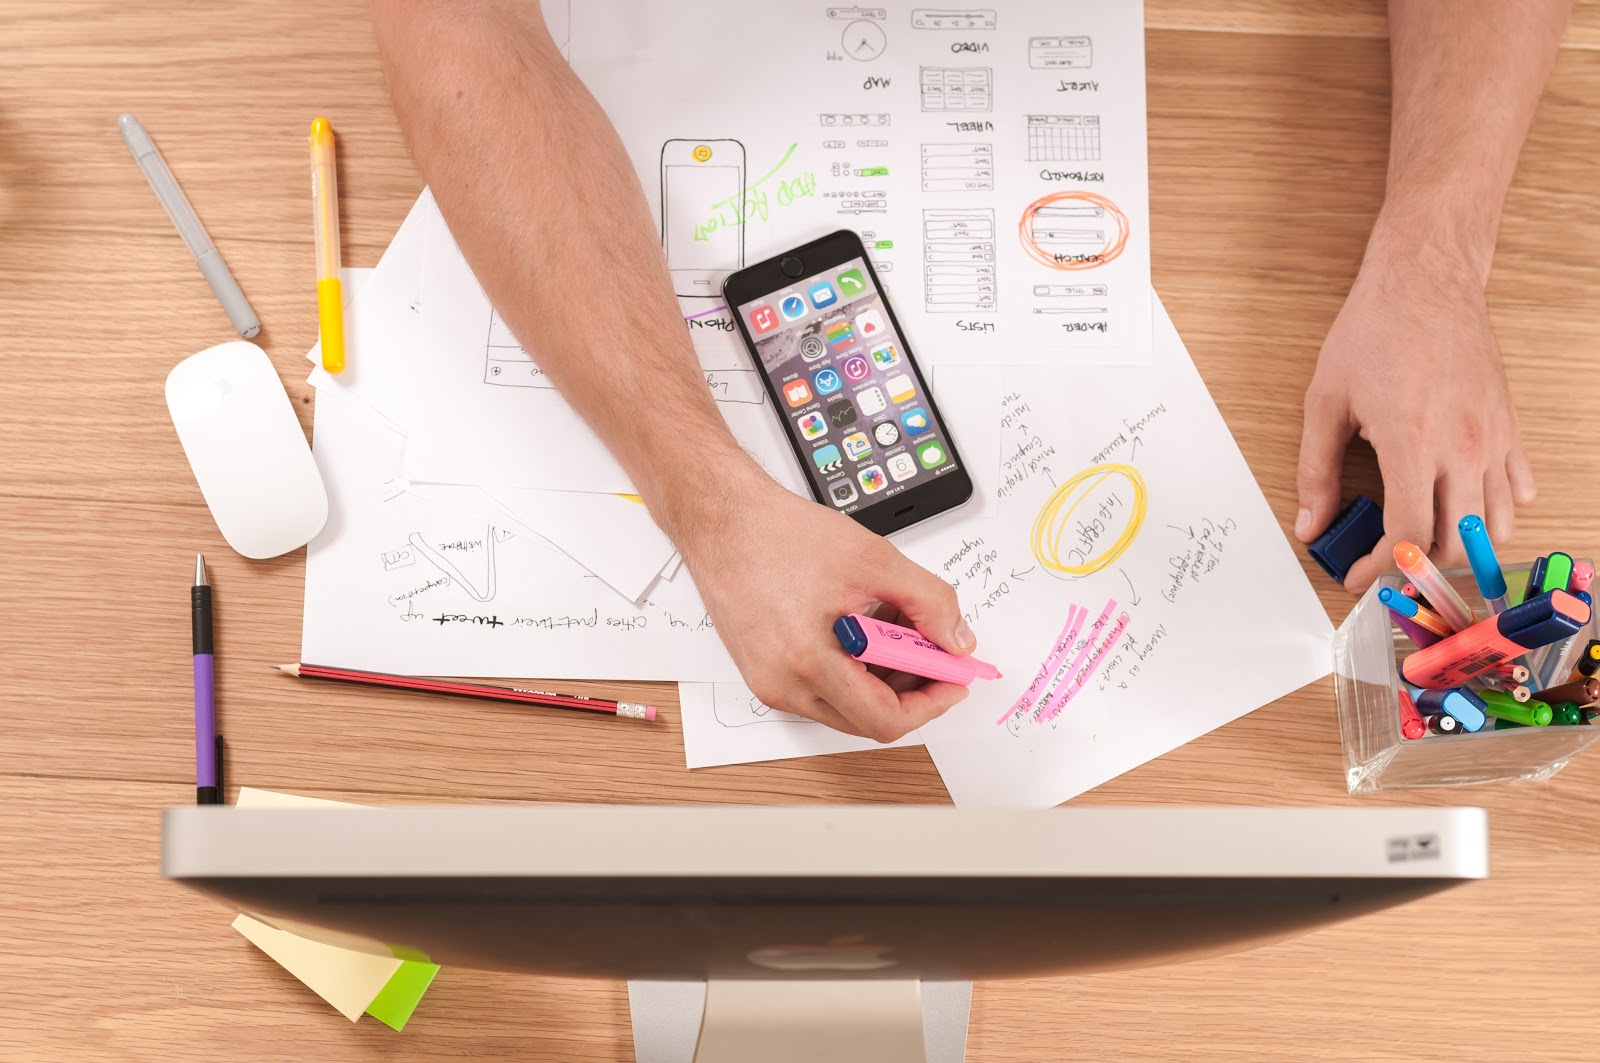 The design thinking process entails research, prototyping, and testing.